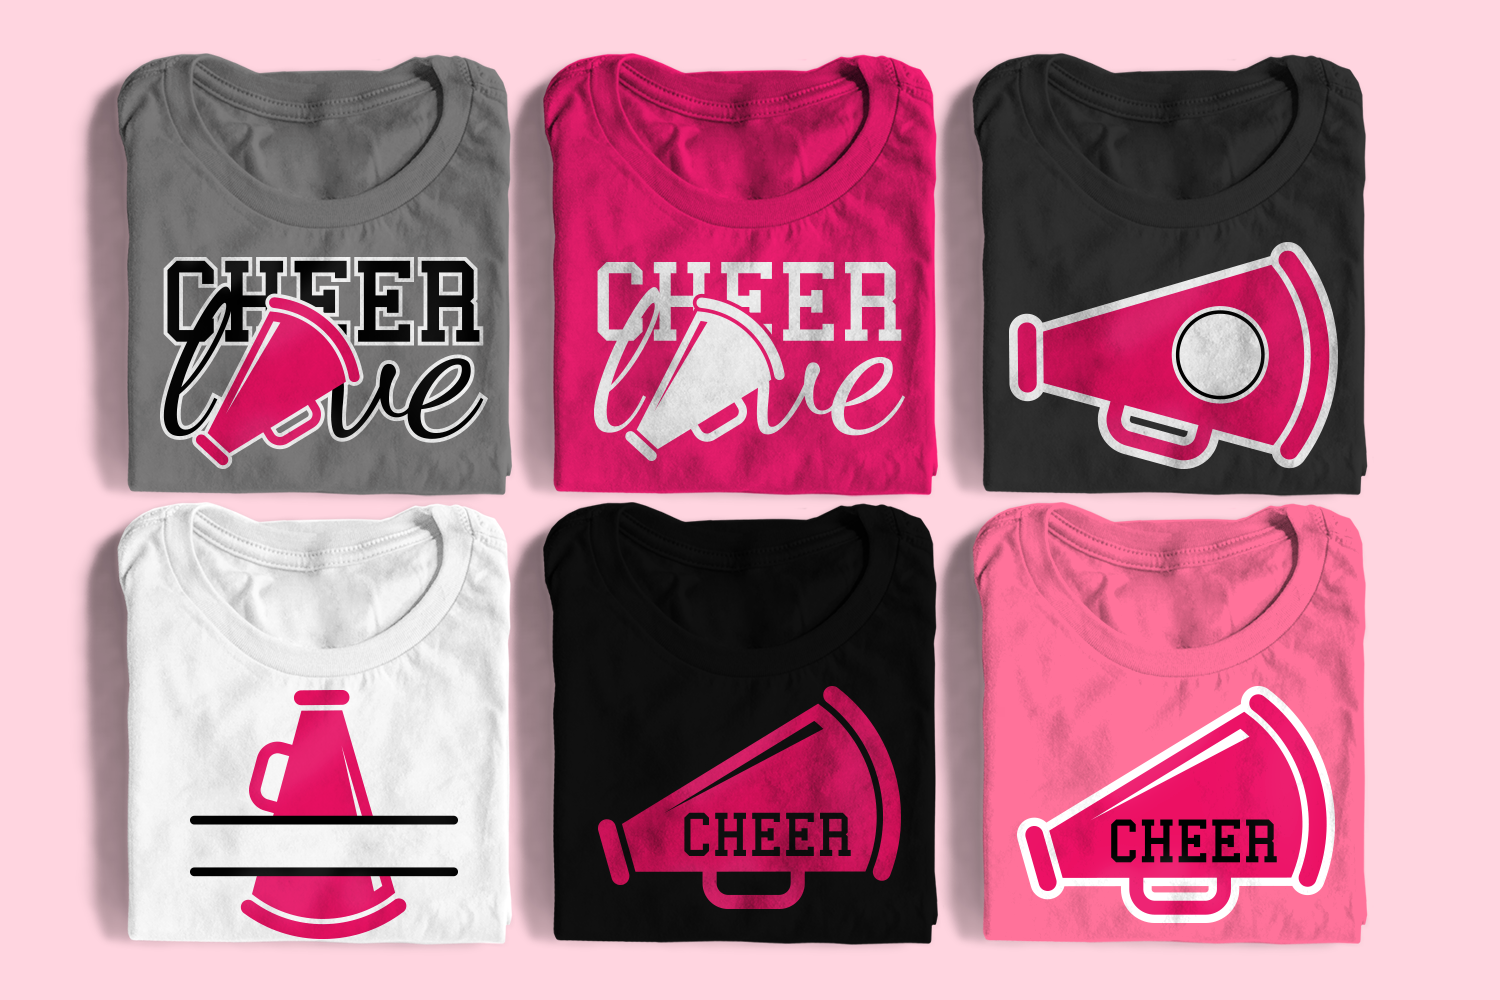 Download Free Cheer Megaphone Set Graphic By Designedbygeeks Creative Fabrica for Cricut Explore, Silhouette and other cutting machines.